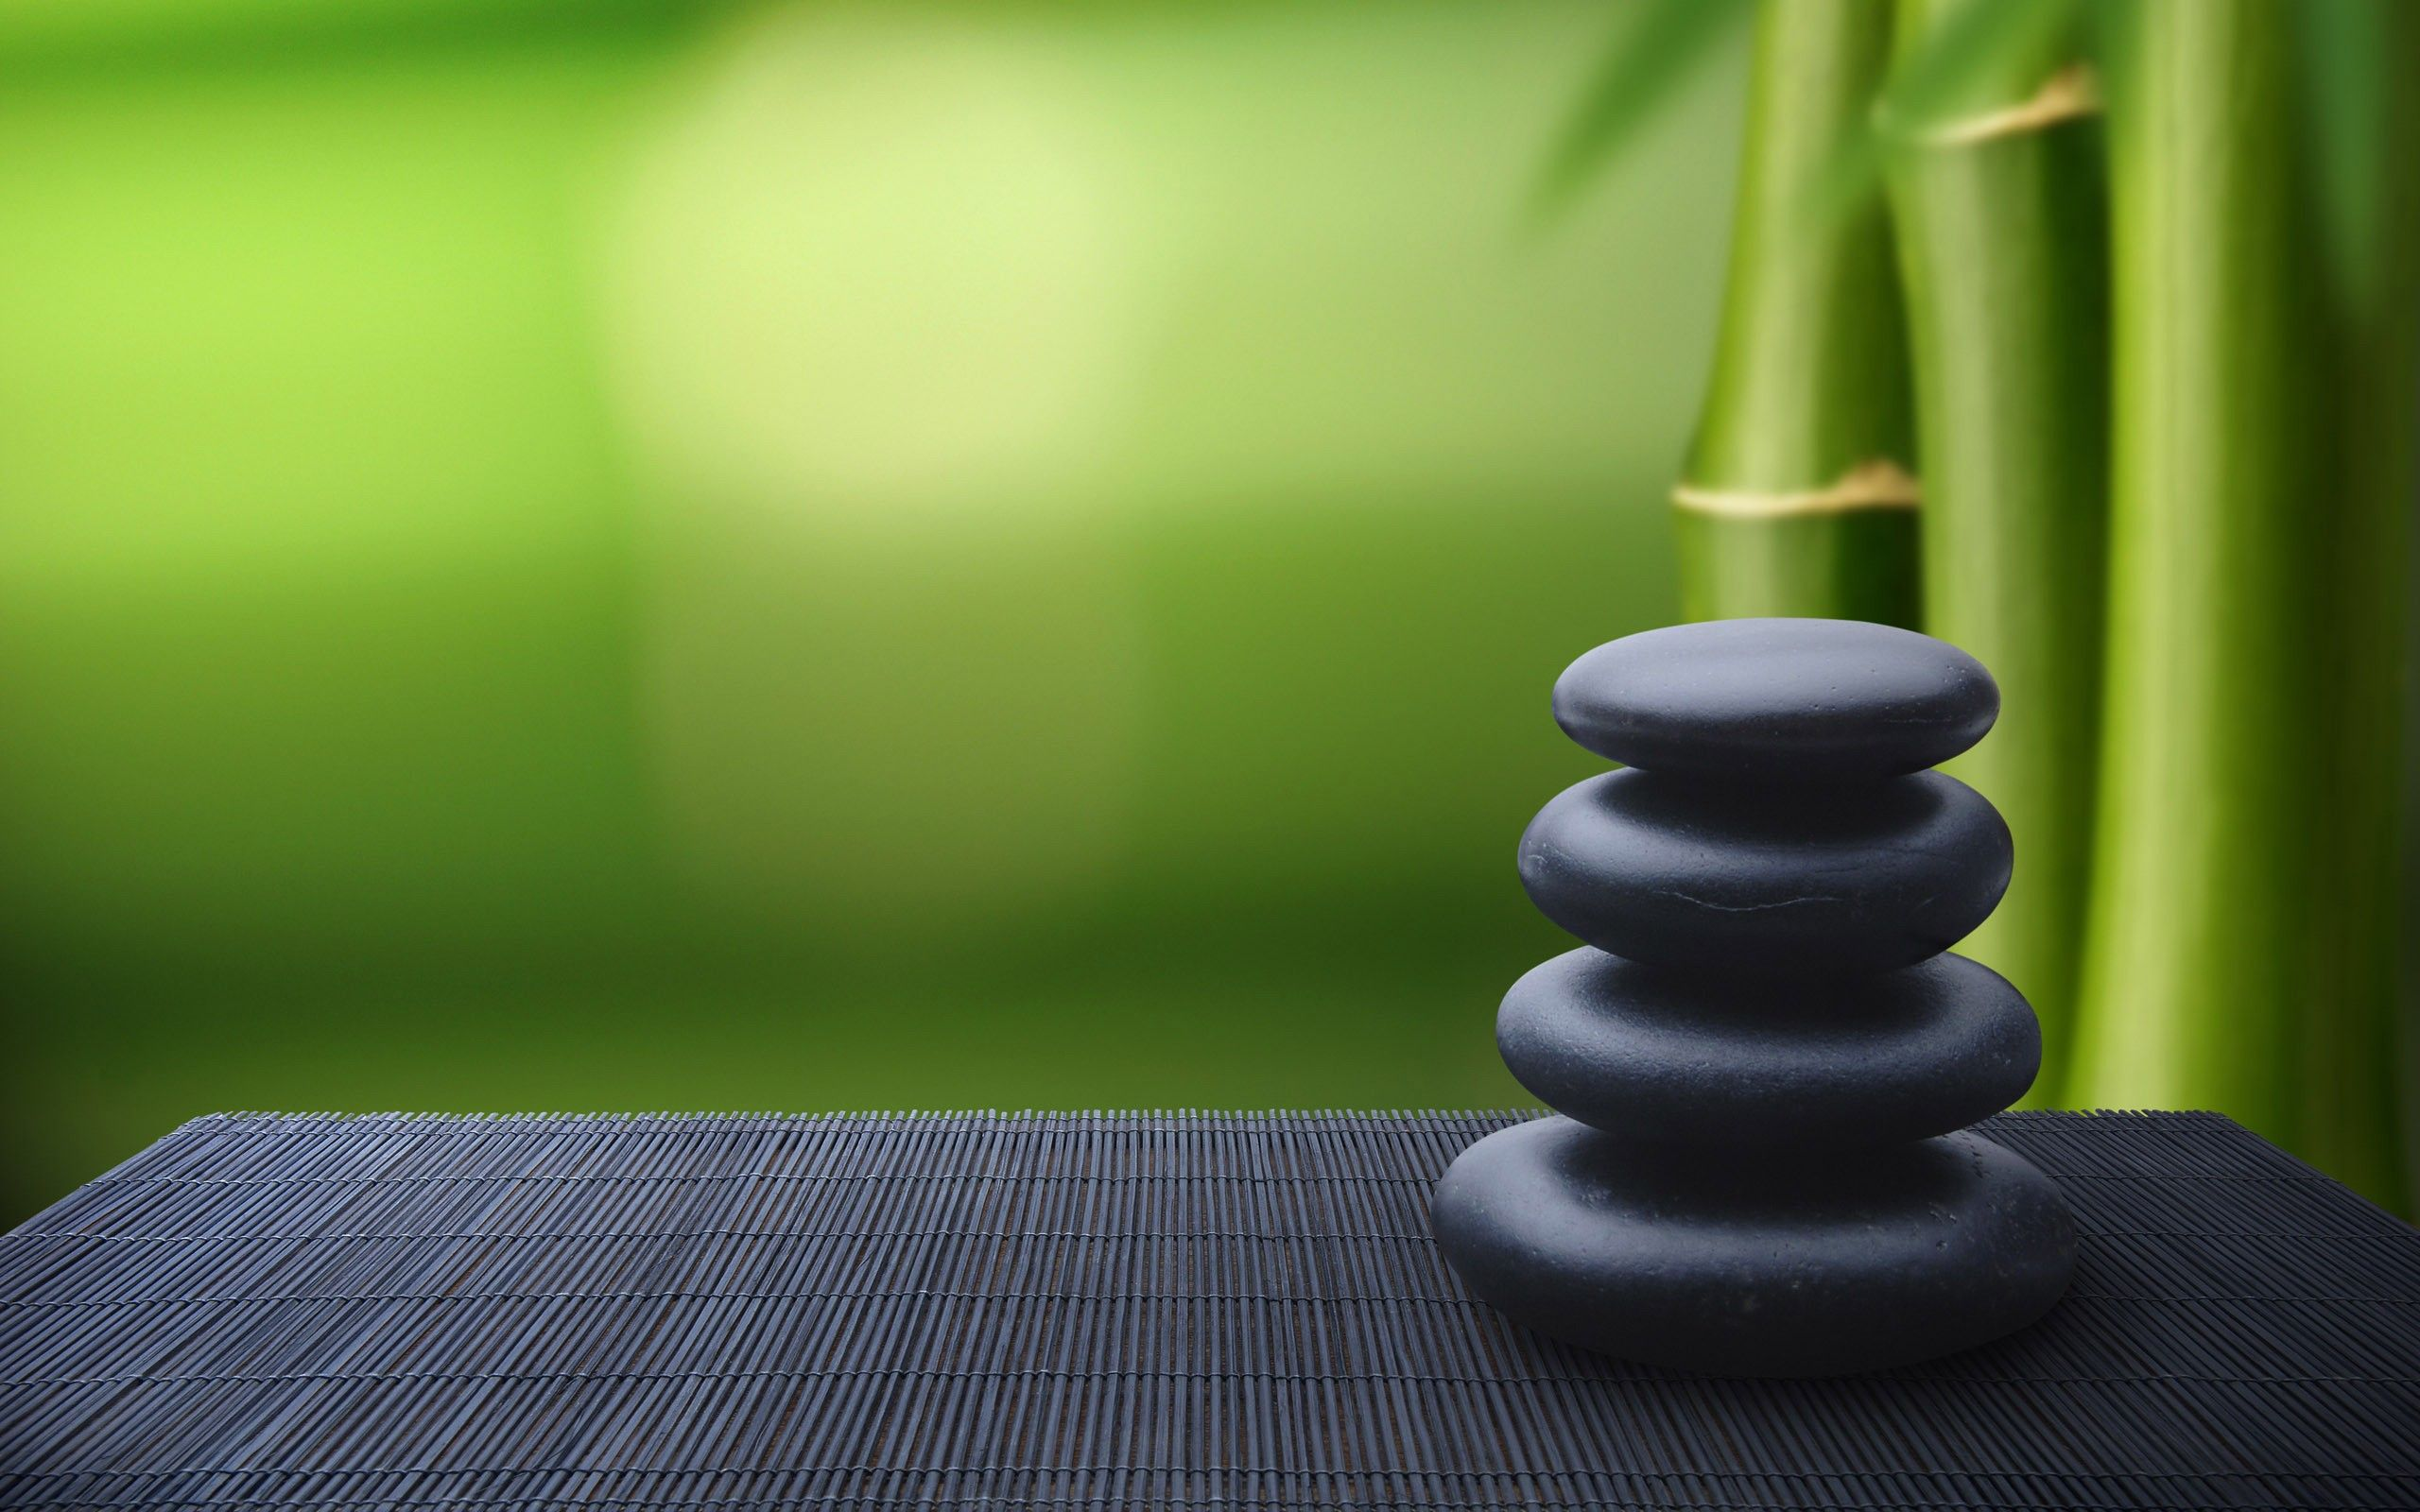 Bamboo Stones Zen Meditation Fresh New Hd Wallpaper